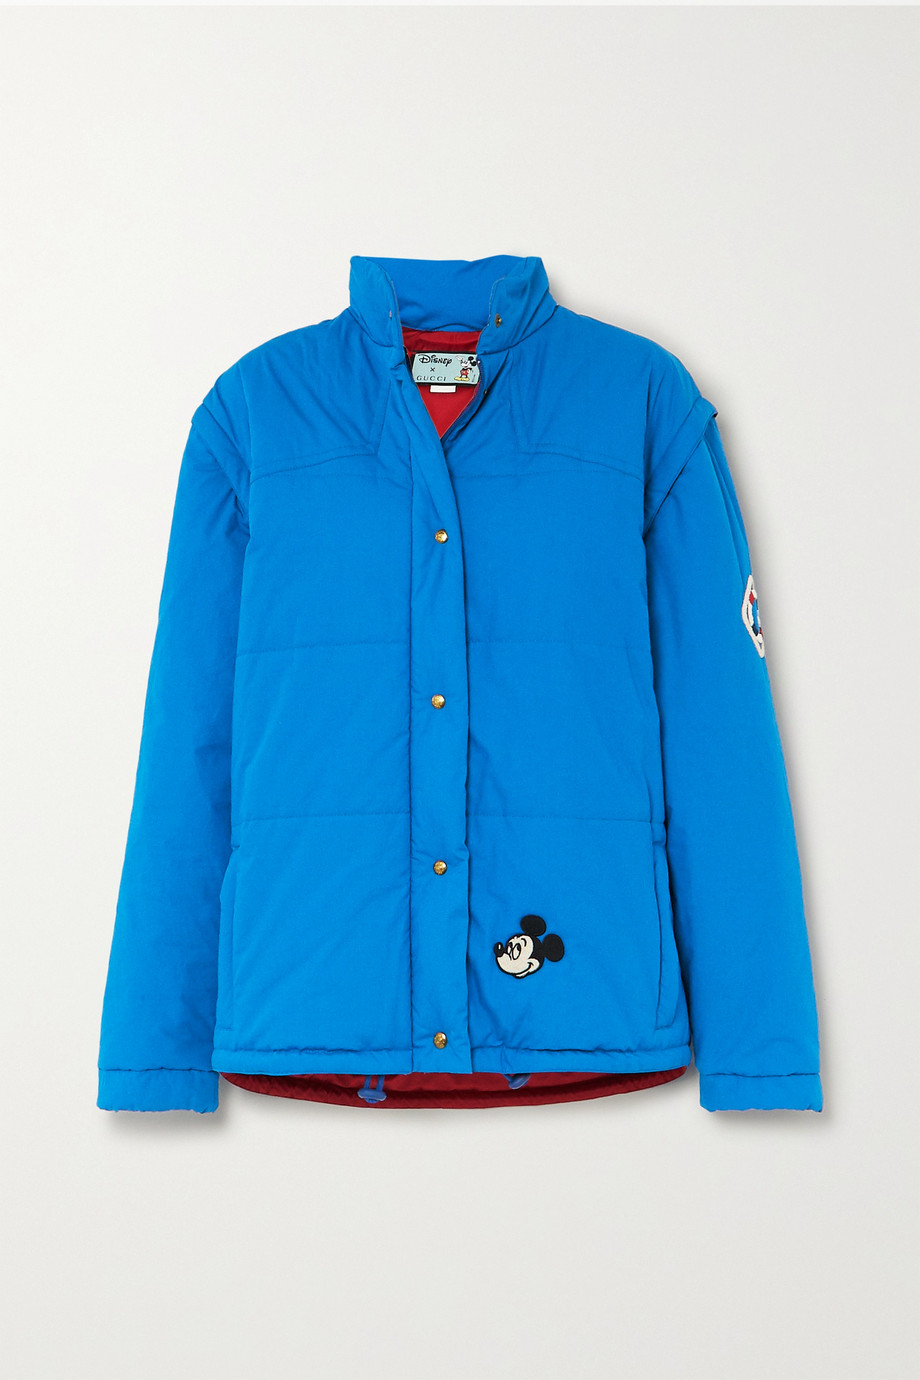 Gucci + Disney convertible appliquéd quilted tech-cotton jacket